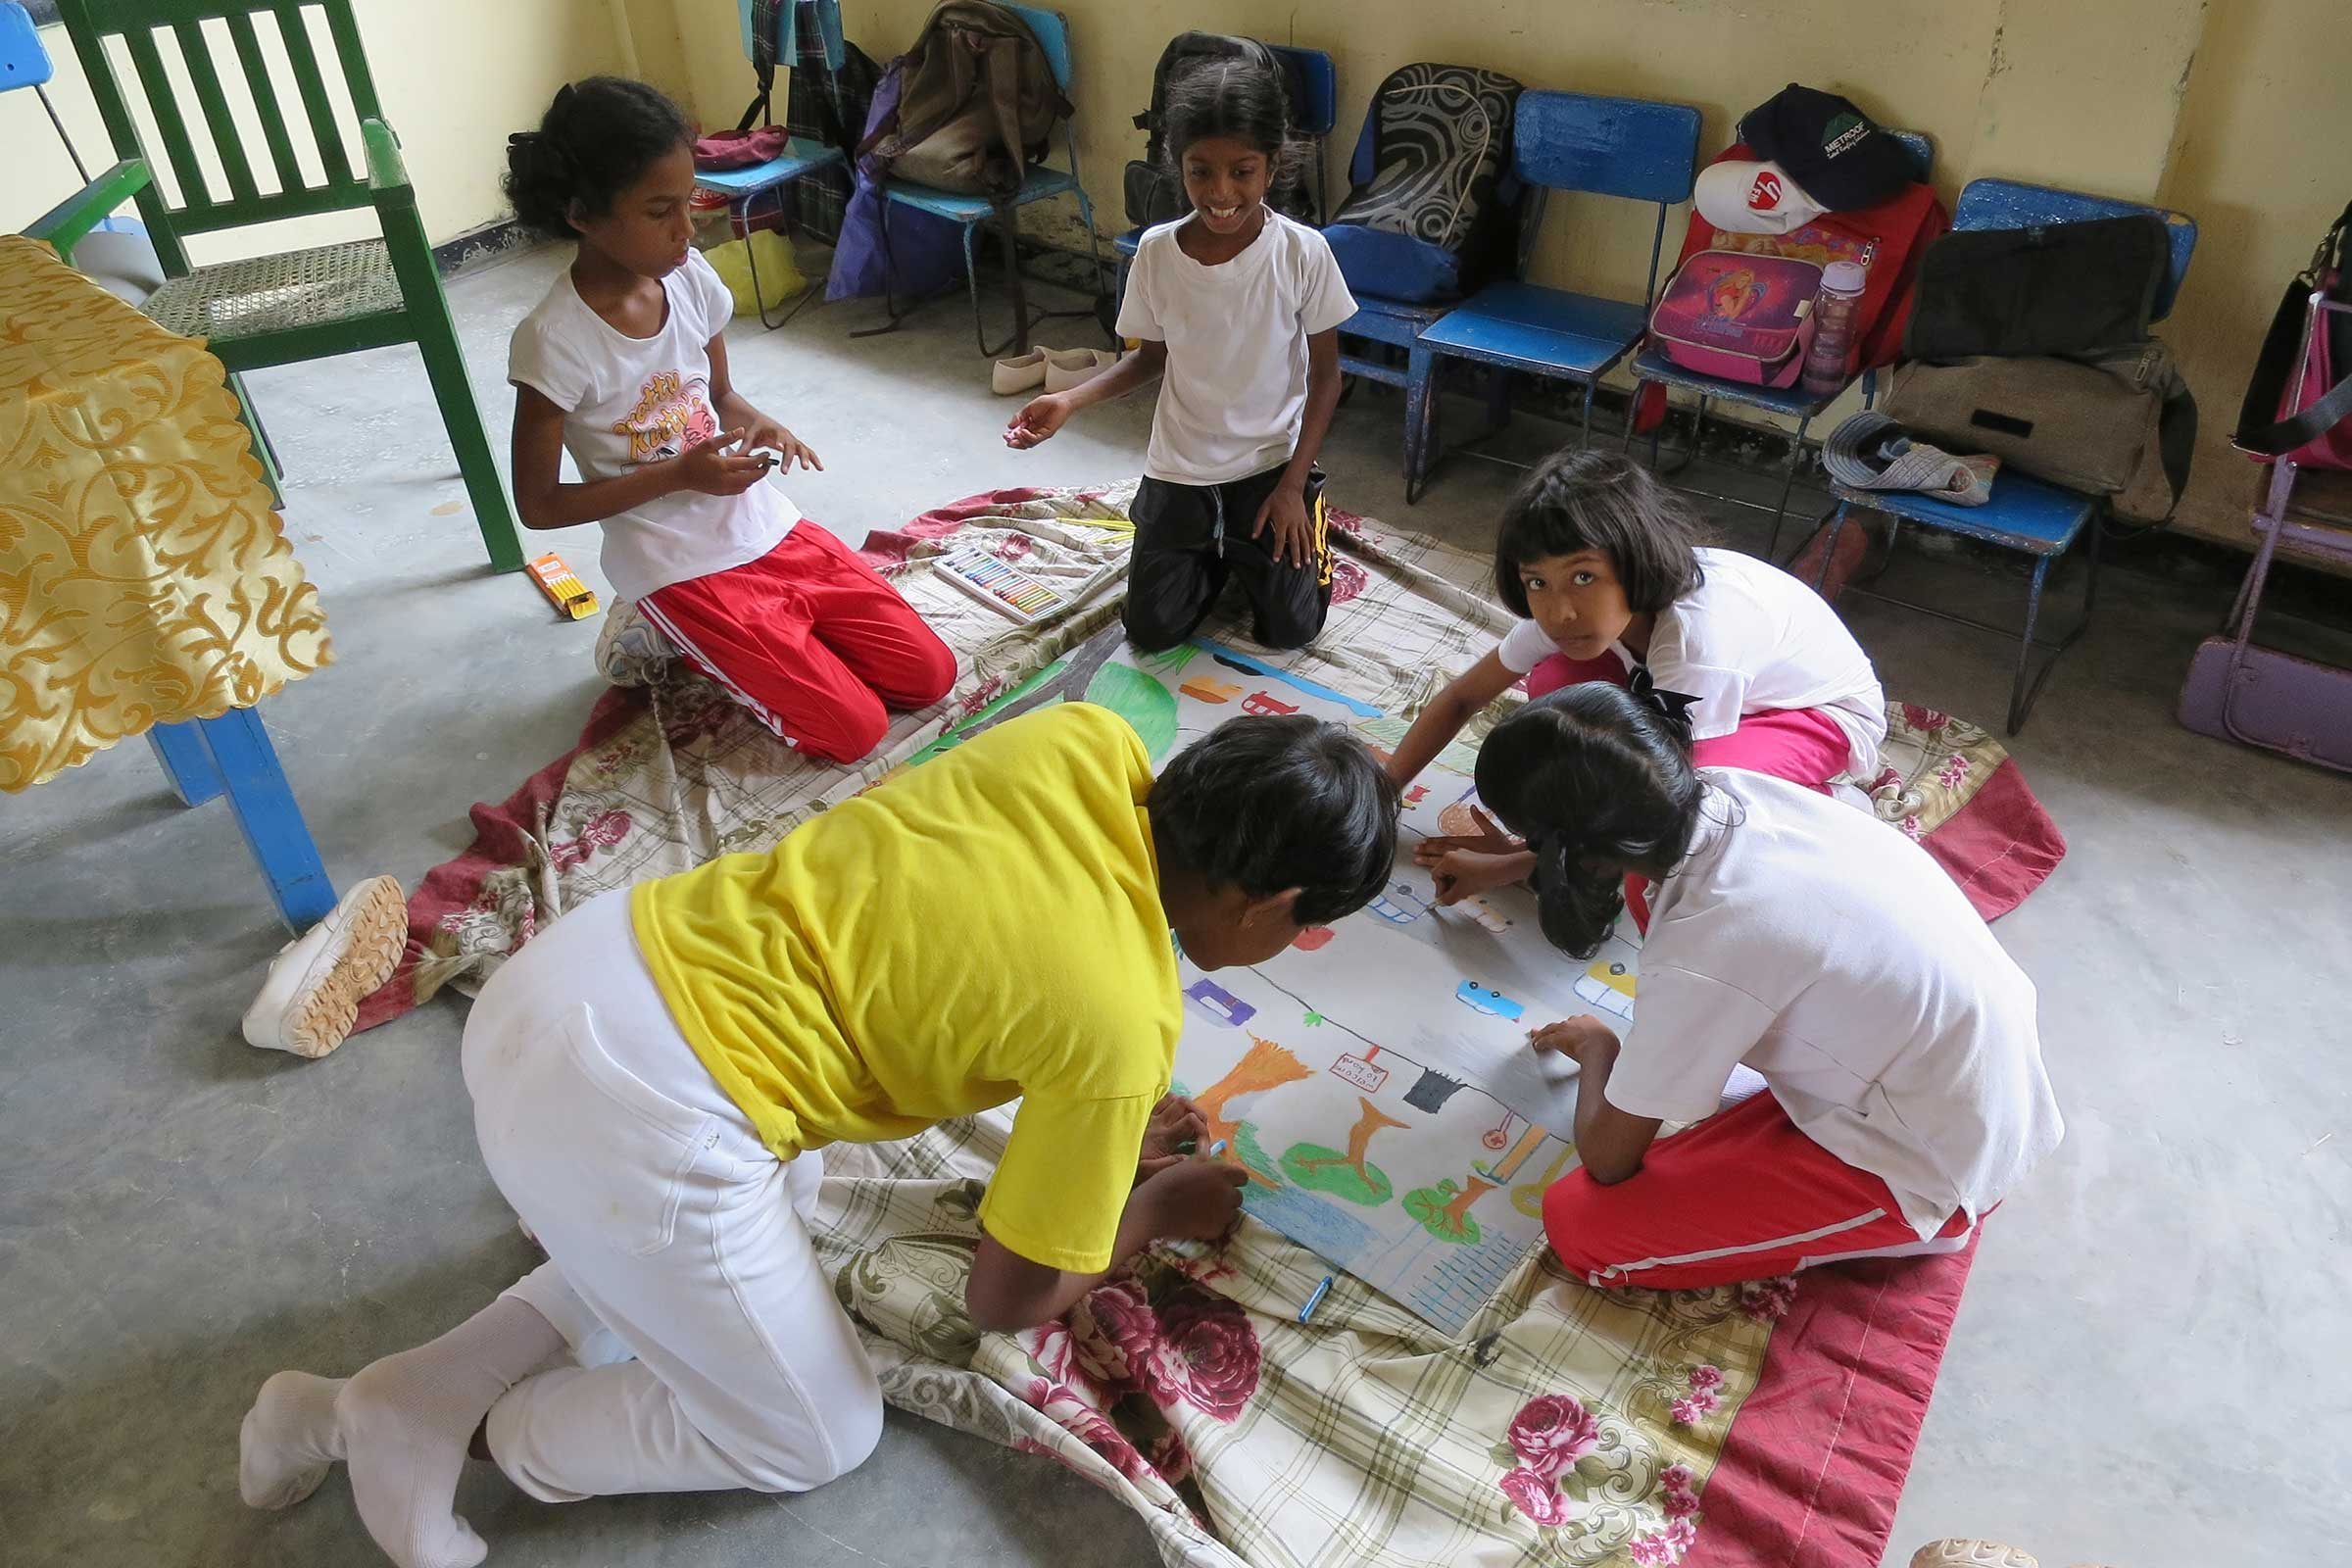 Primary school students attend an art workshop at Mullegama Art Centre.